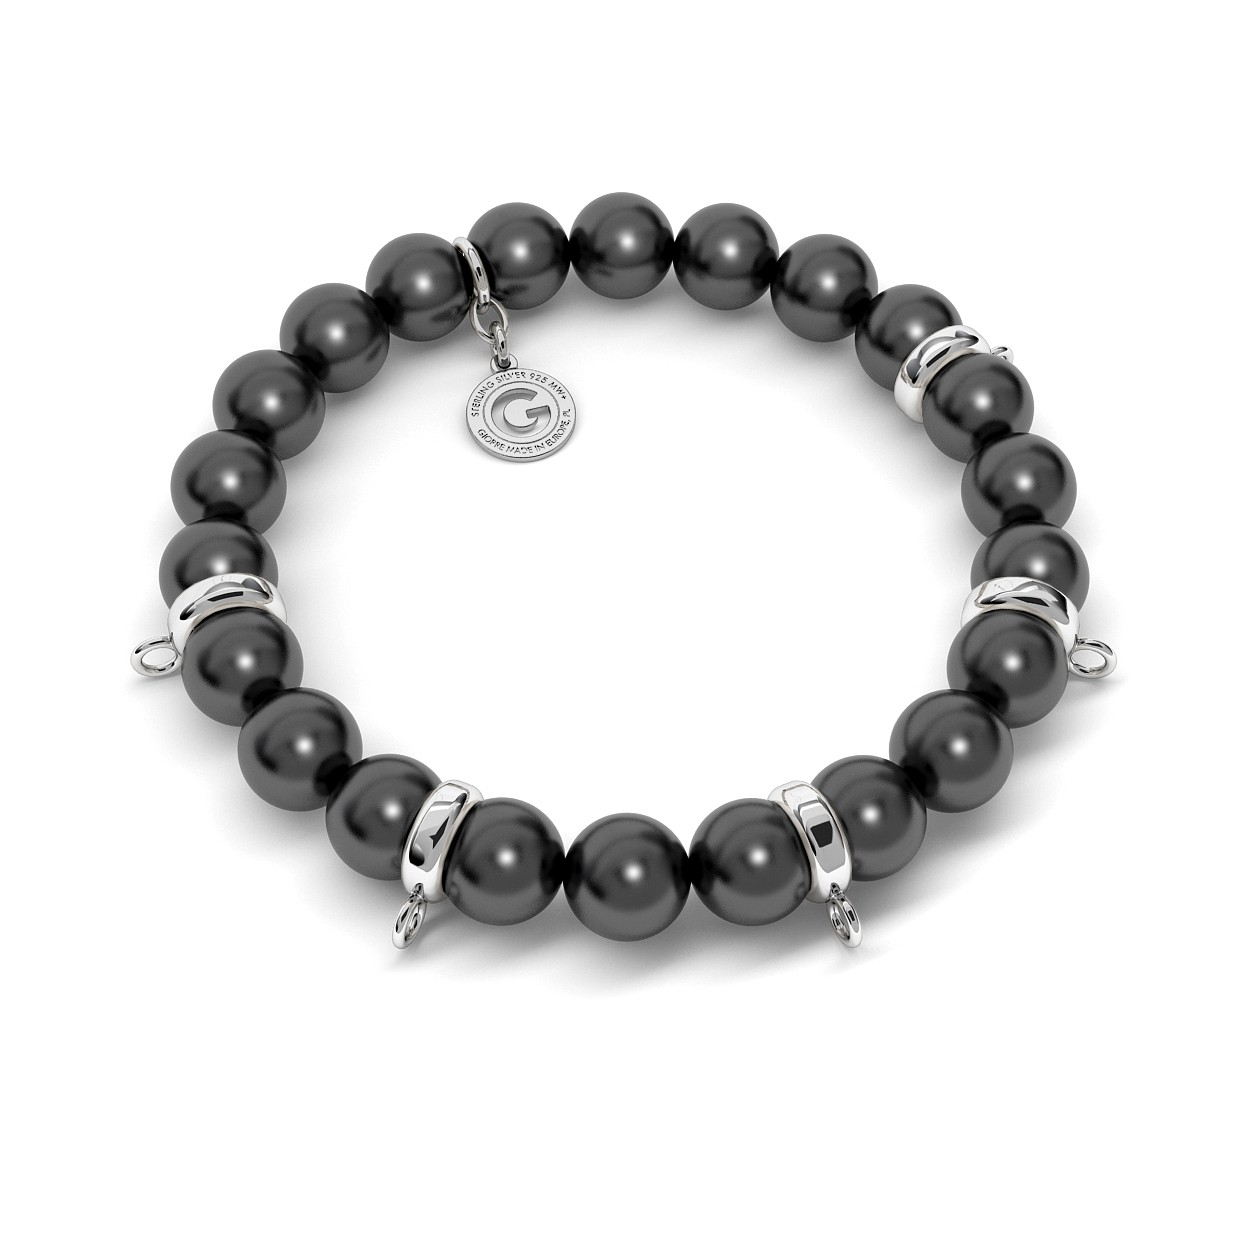 FLEXIBLE BRACELET WITH PEARLS (SWAROVSKI PEARL) FOR 5 CHARMS, SILVER 925,  RHODIUM OR GOLD PLATED